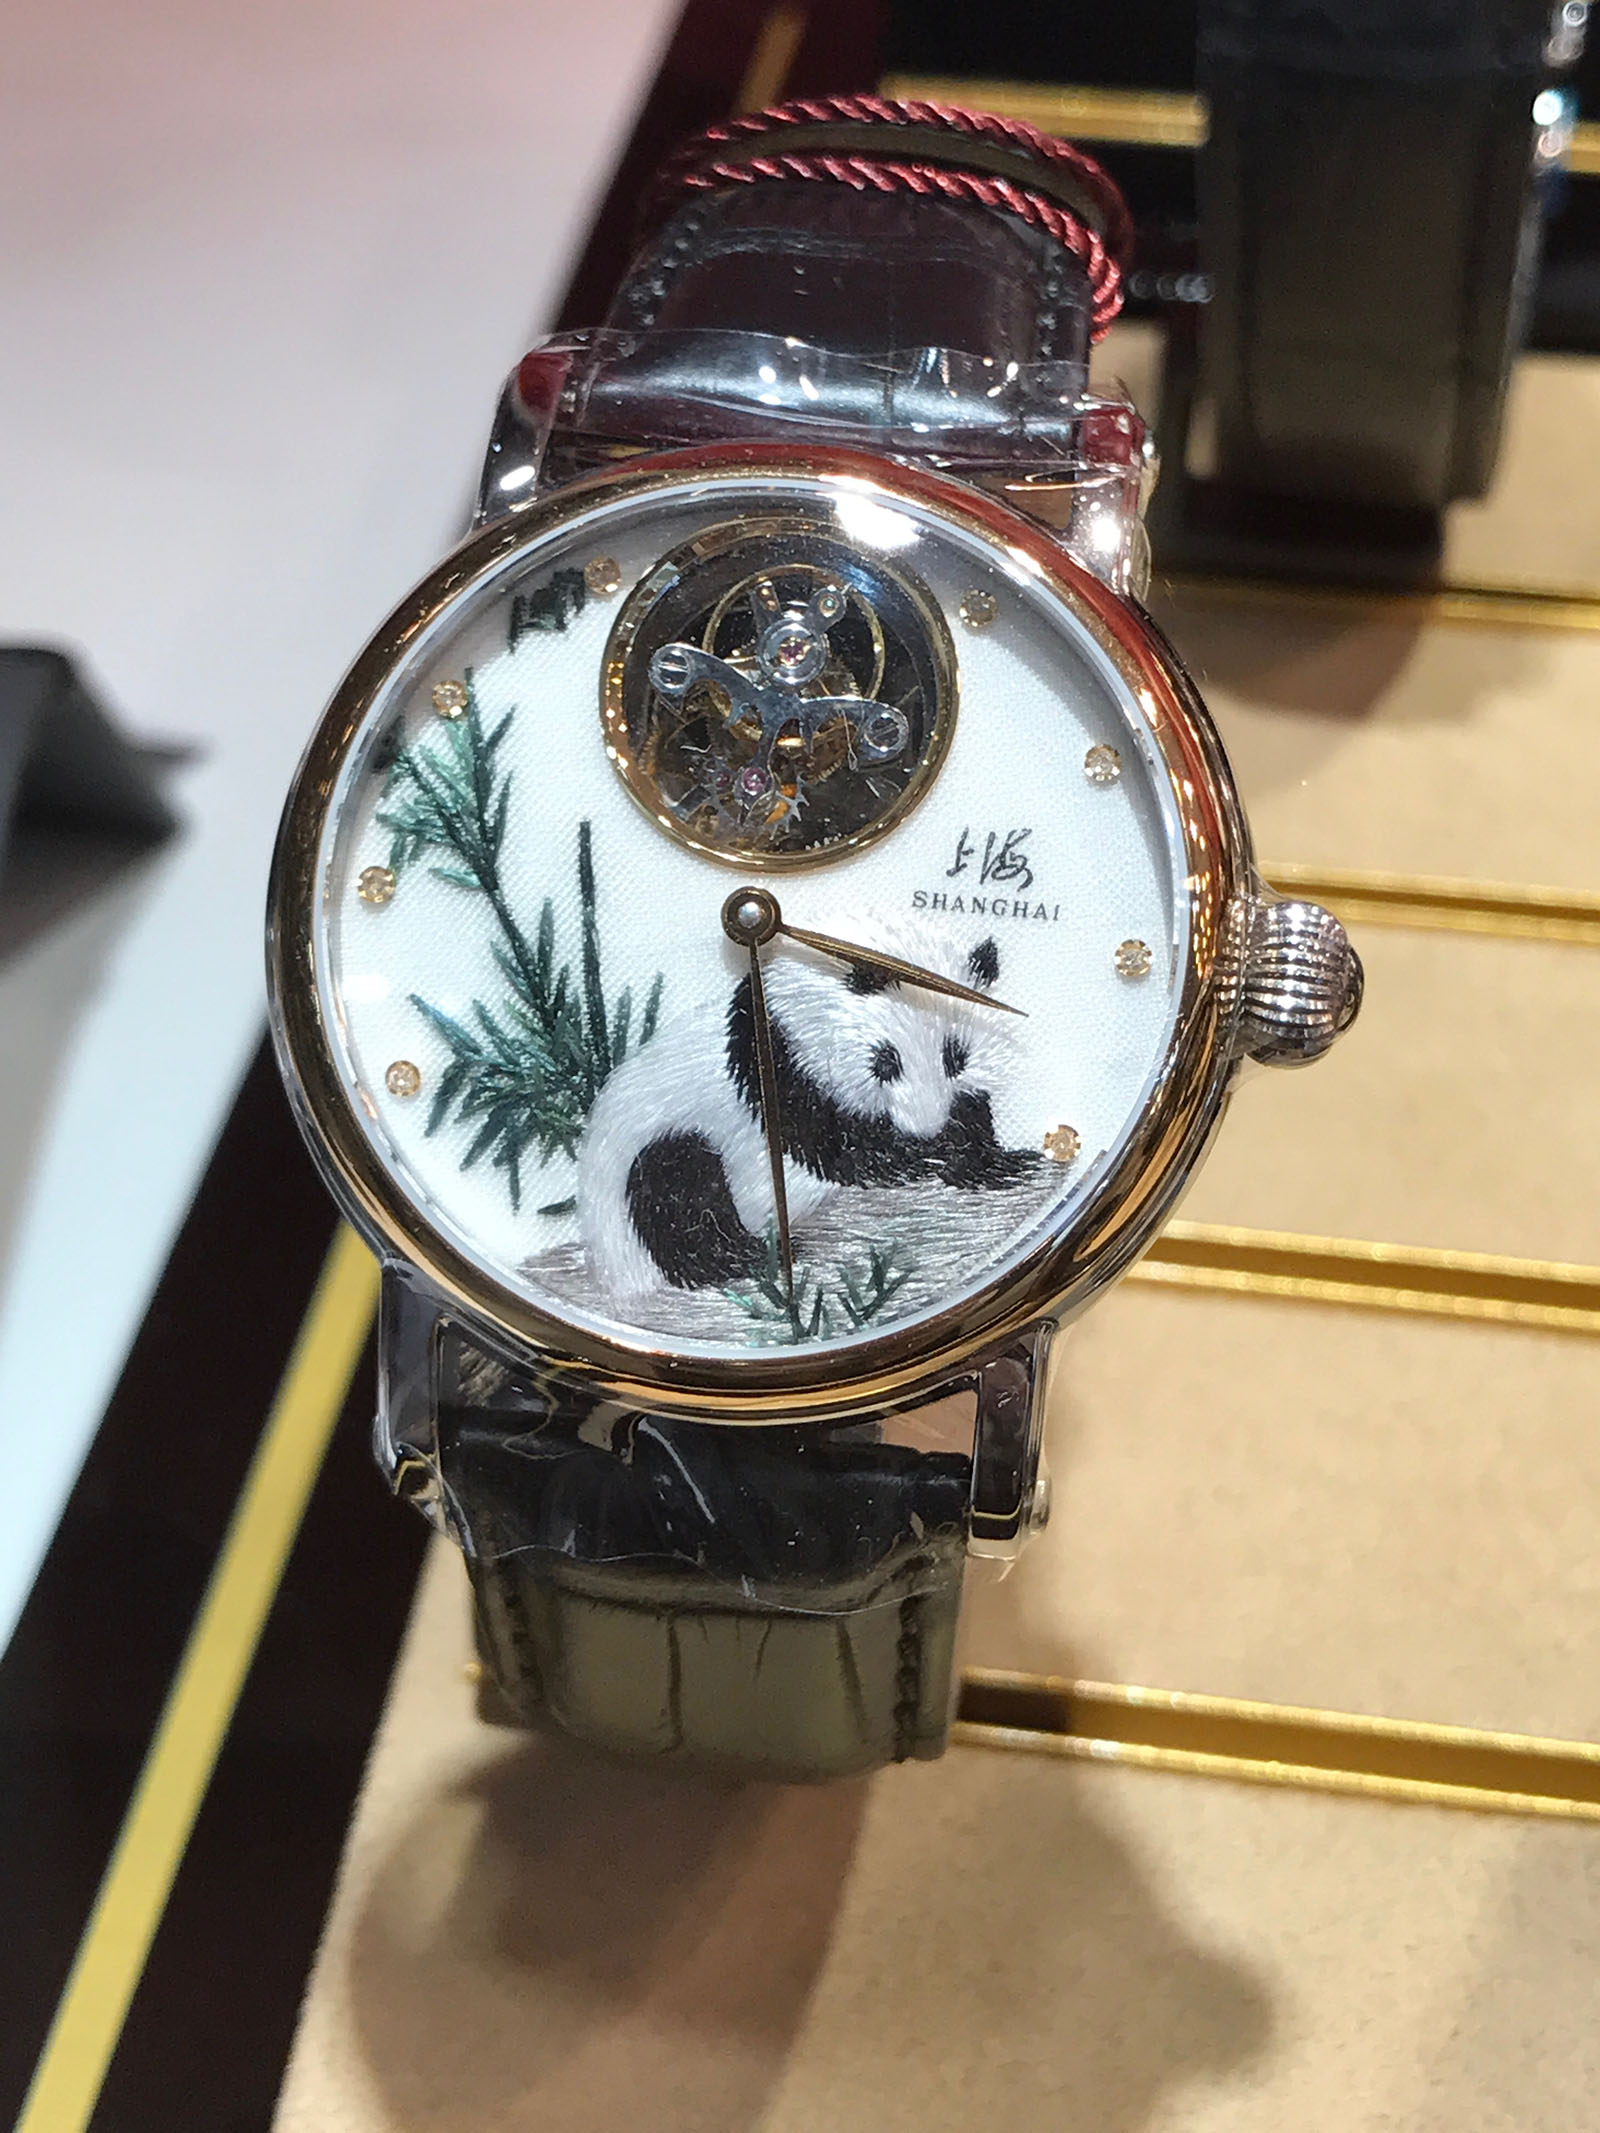 clock aatos visit asia the hkwcf kong hong biggest to in watch a sjx watches fair